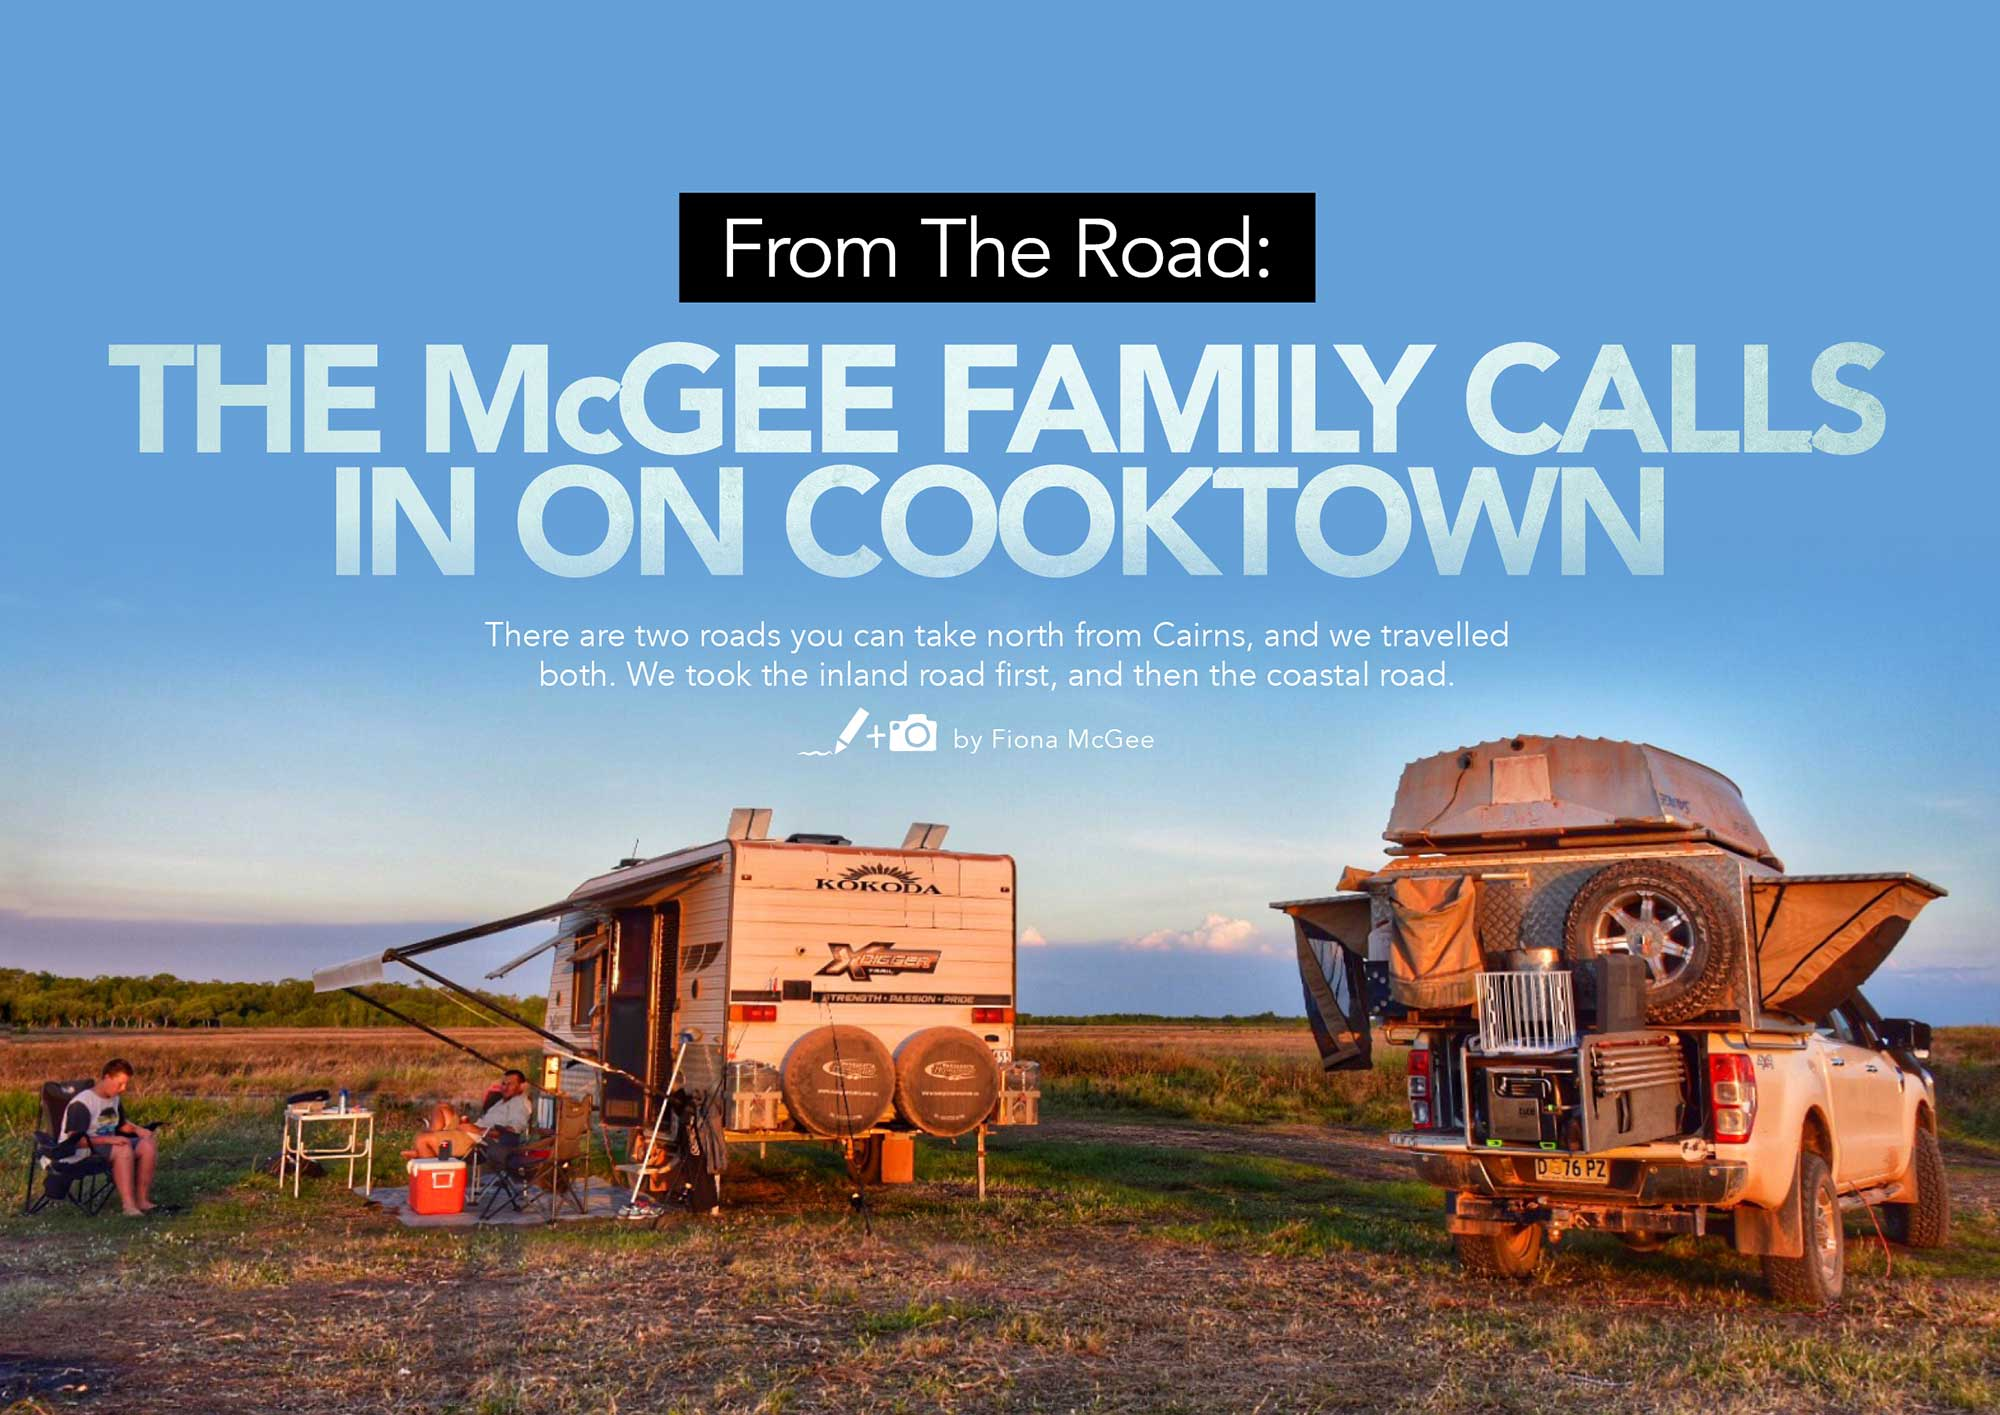 The McGee Family Calls in on Cooktown